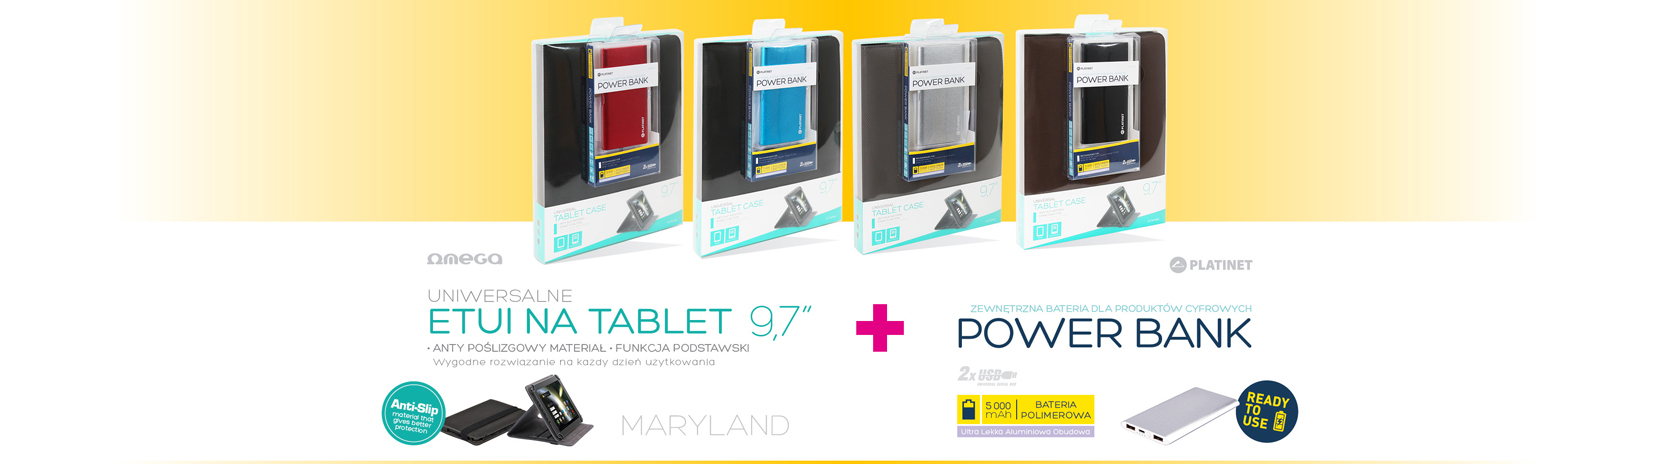 MARYLAND-POWERBANK_1680x464_PL_baner